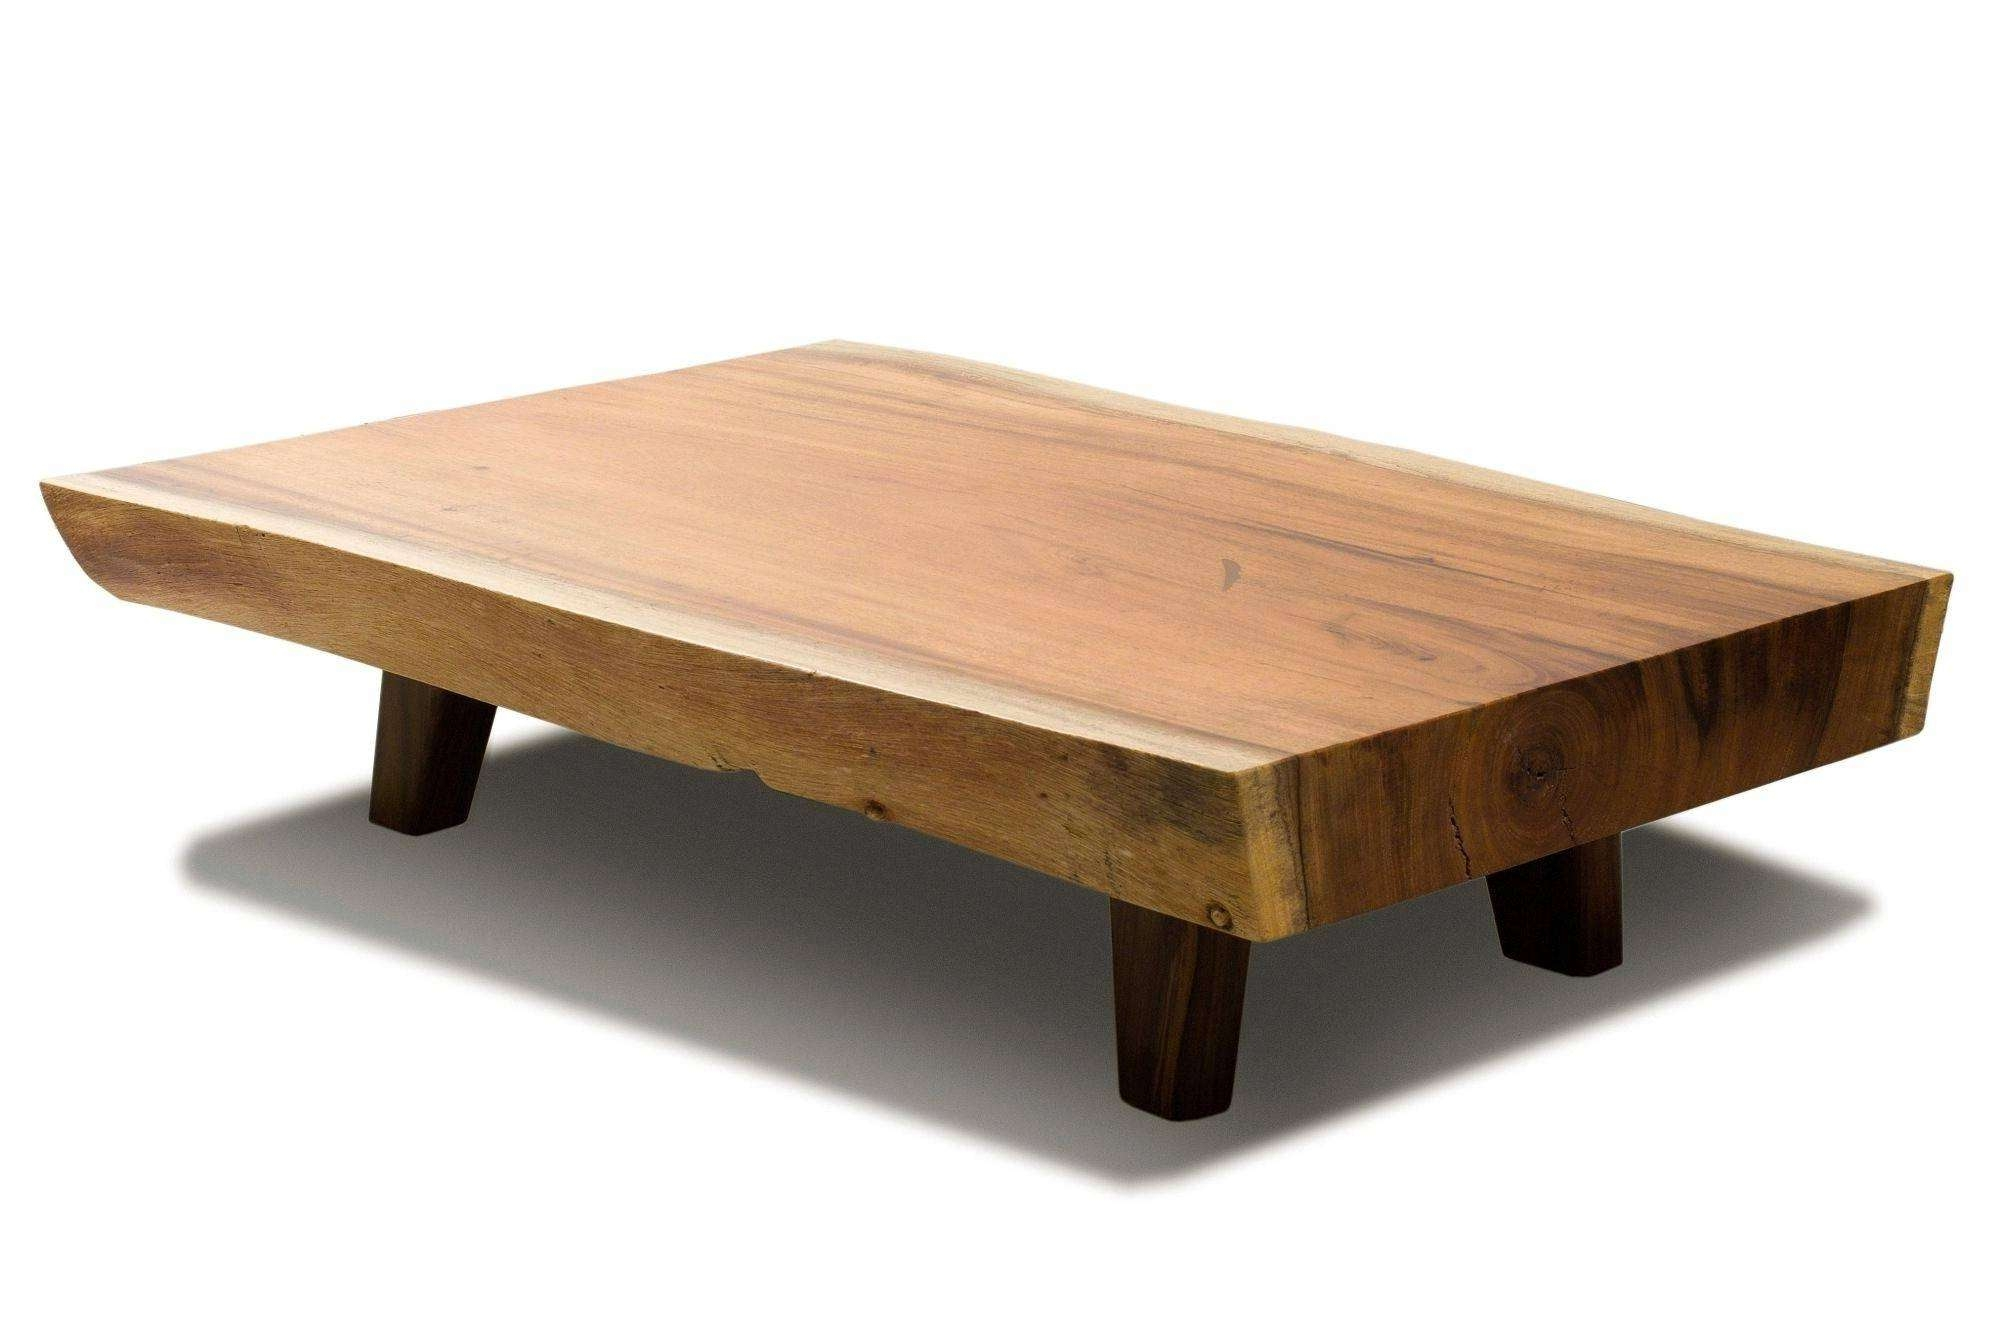 Trendy Large Low Wood Coffee Tables In Coffee Table : Popular Large Low Wood Coffee Tables Raw Edge Table (View 17 of 20)